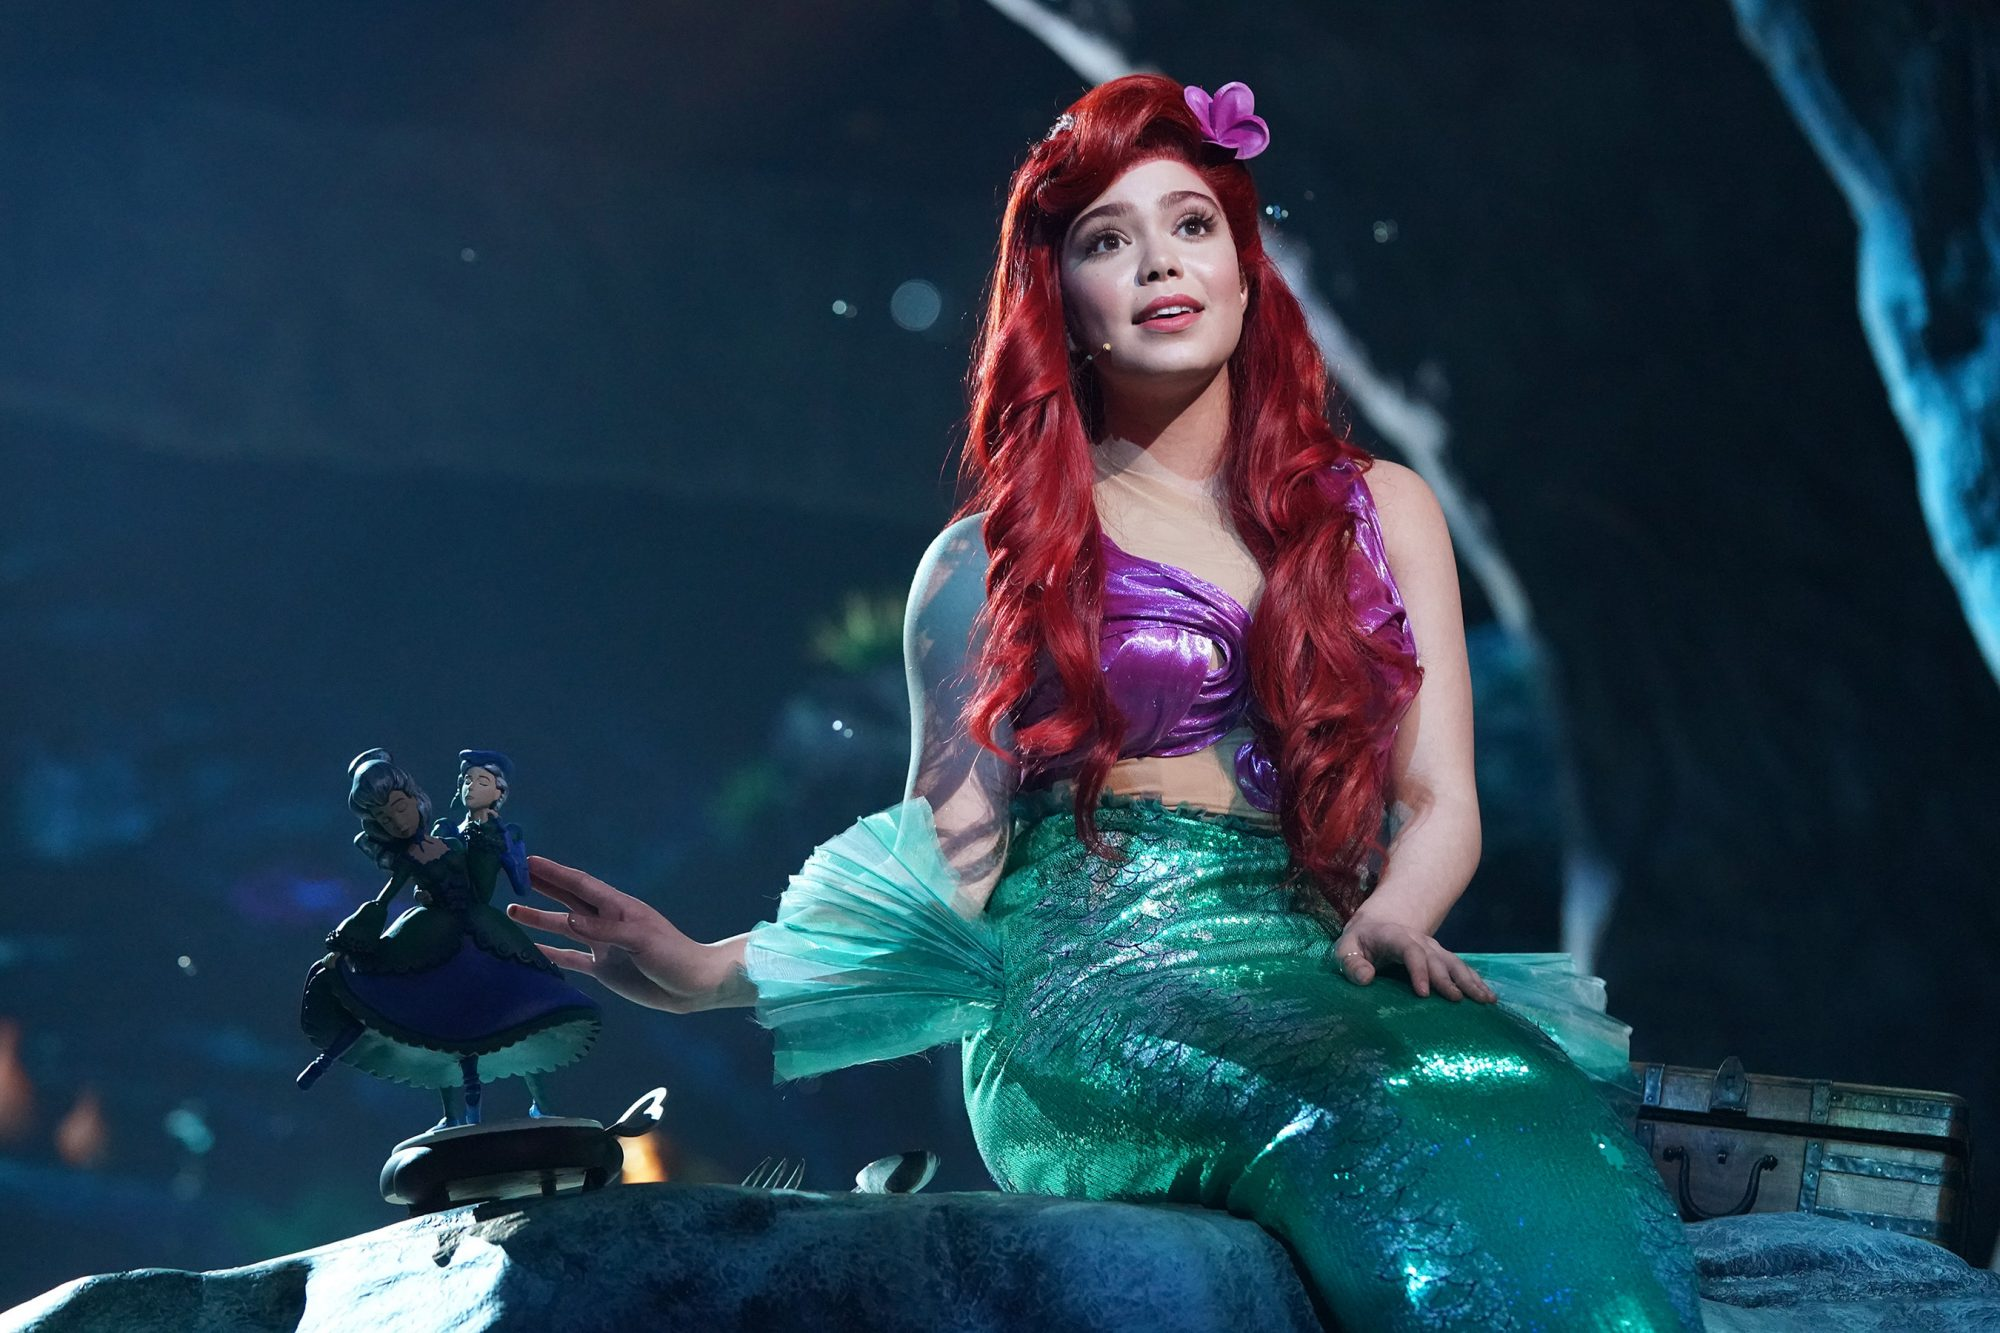 7. The Little Mermaid Live, ABC (2019)